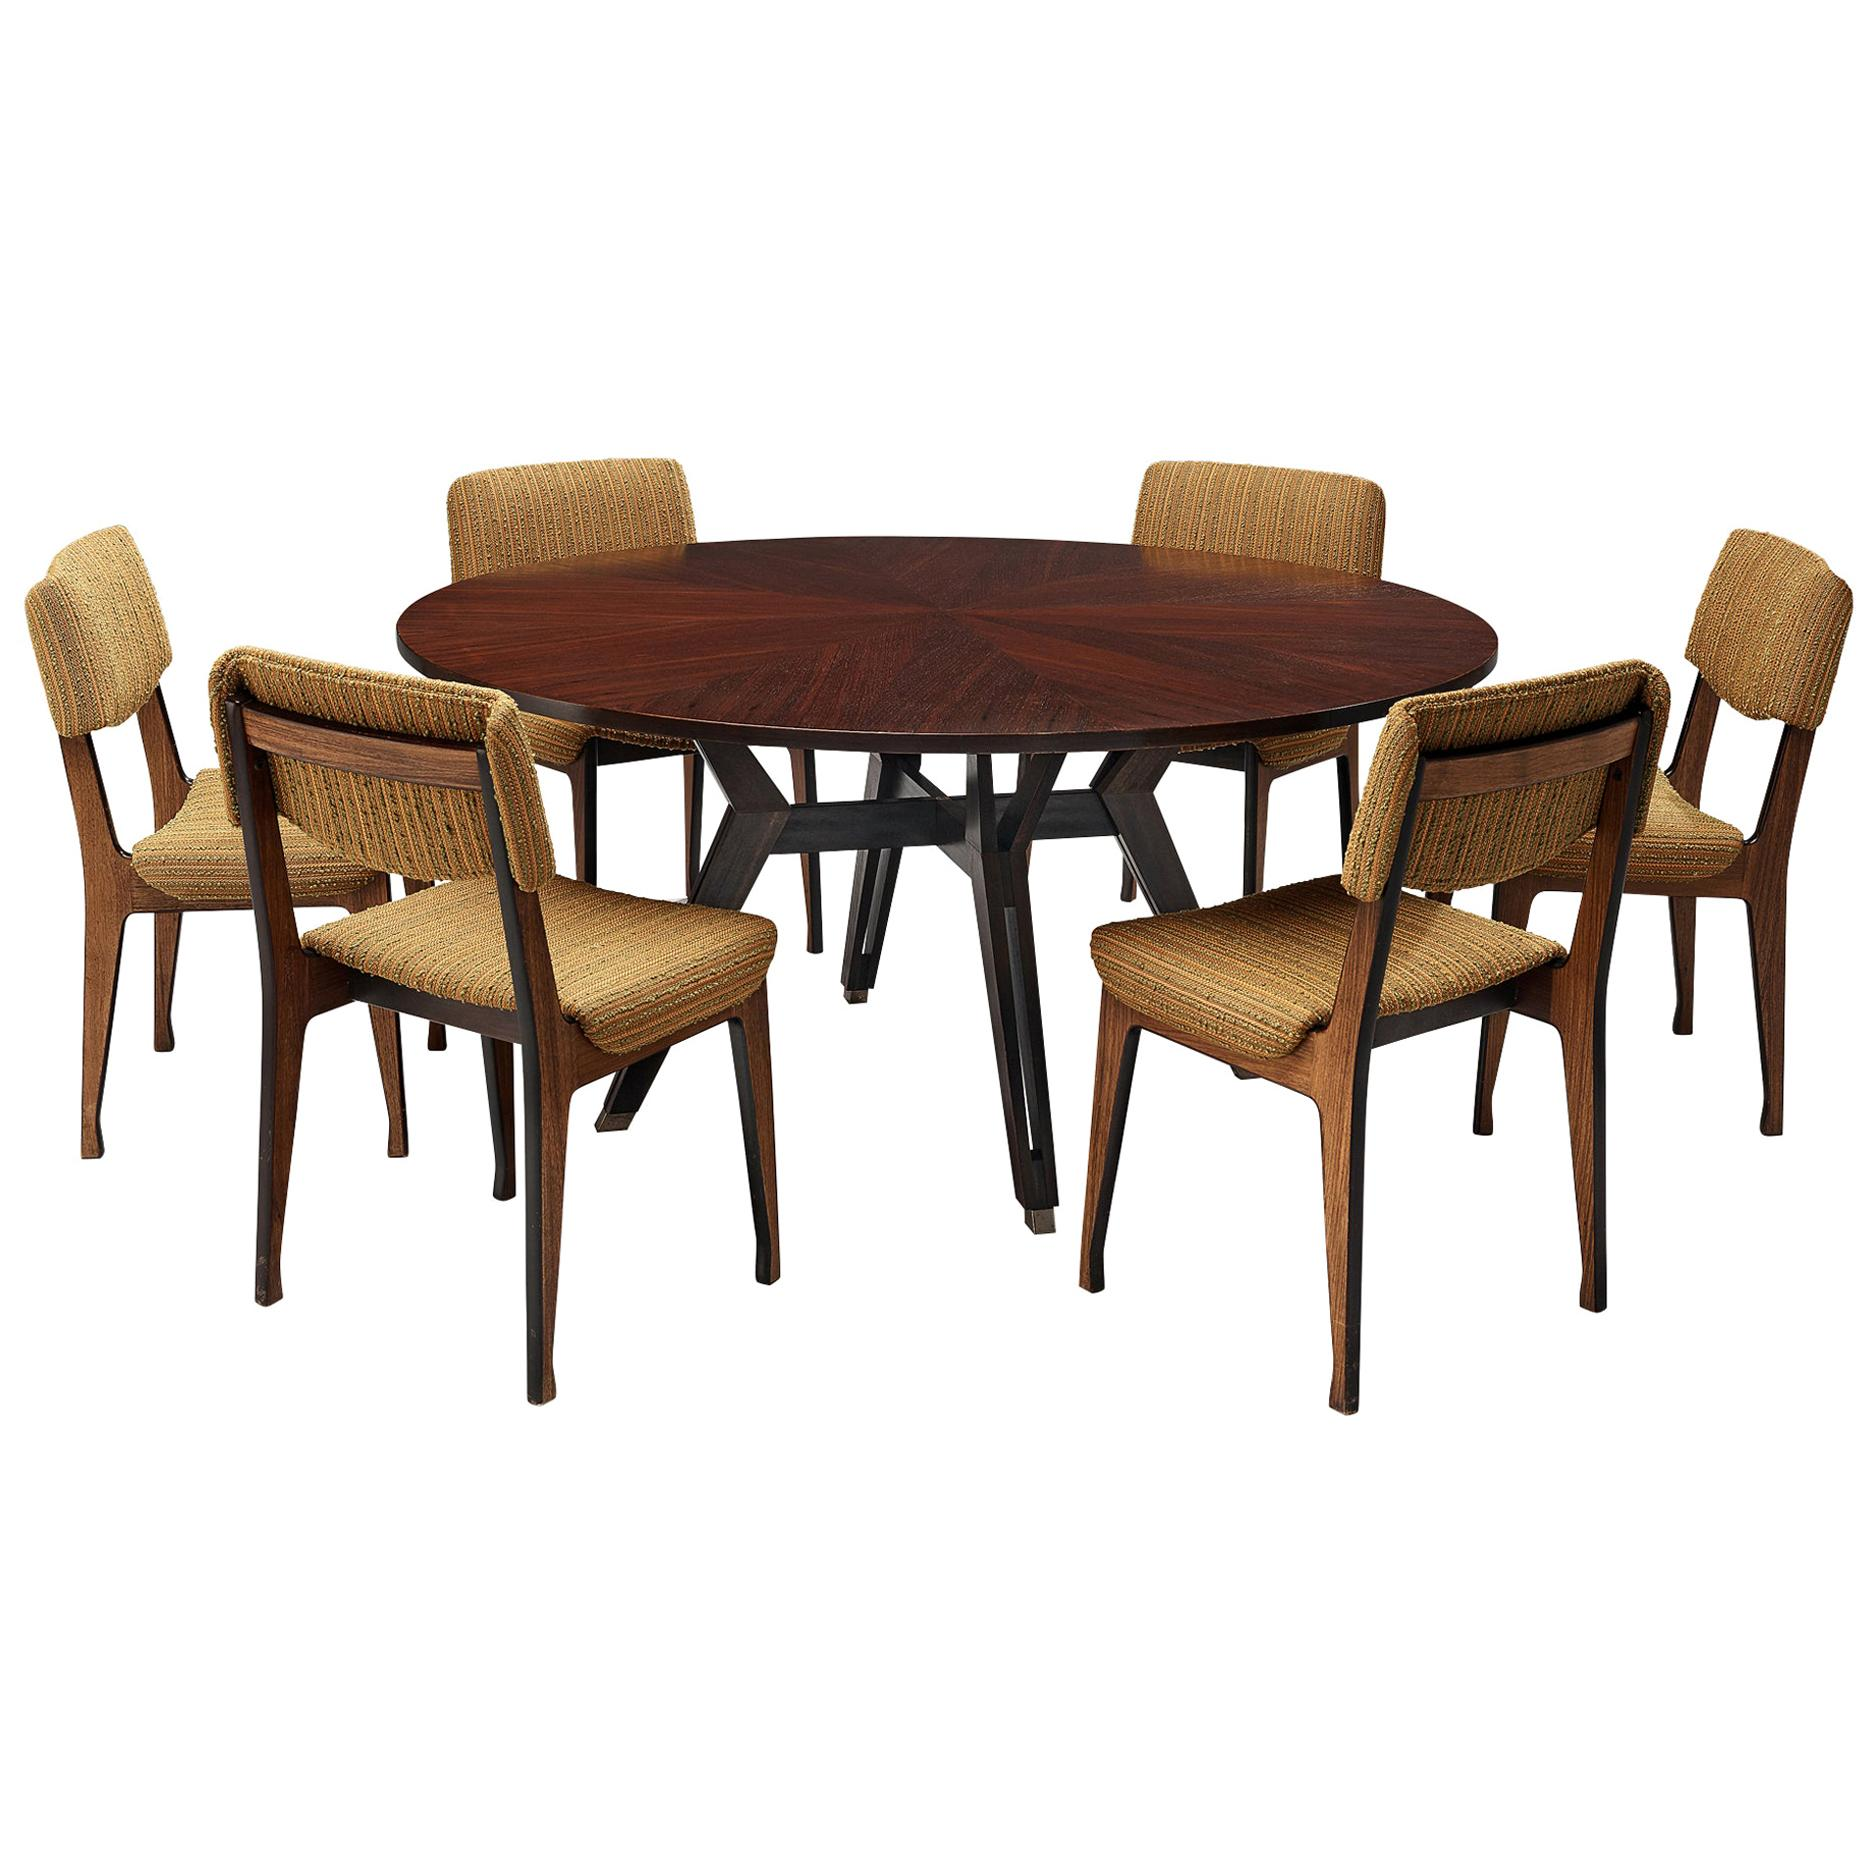 Ico Parisi for MIM Roma Dining Table and MIM Roma Dining Chairs